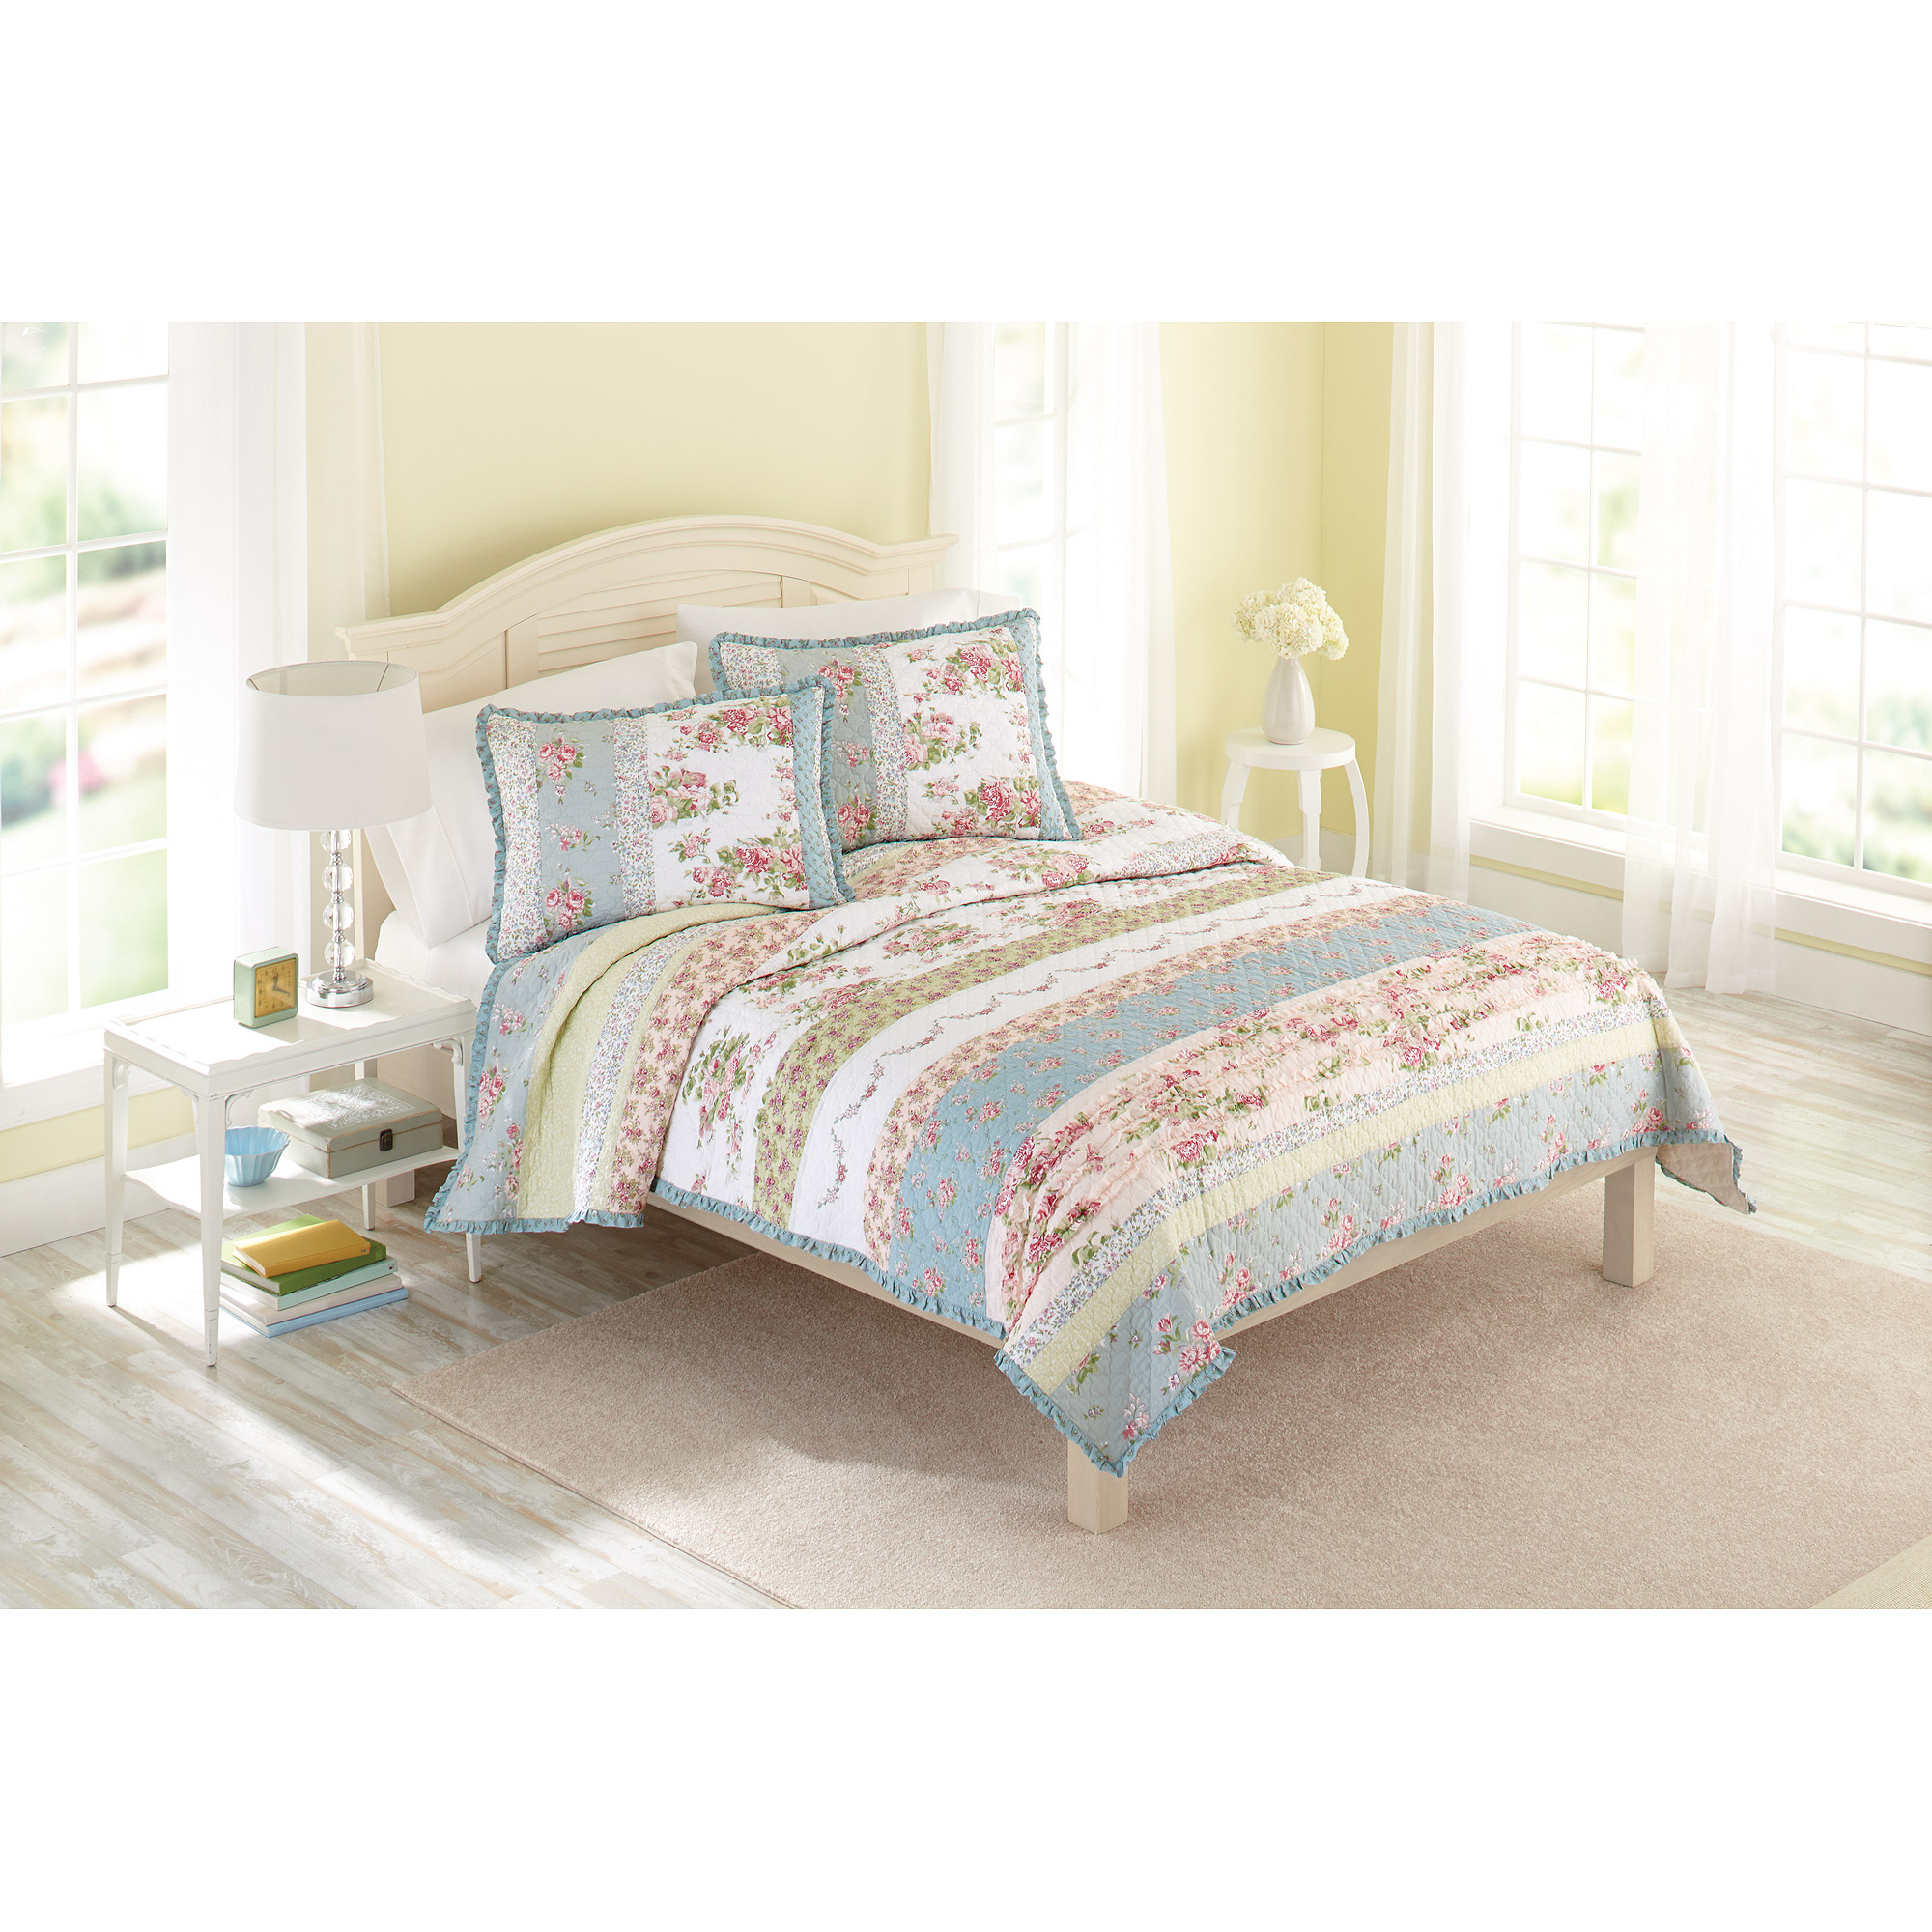 Better Homes and Gardens Country Chic Bedding Quilt Walmartcom